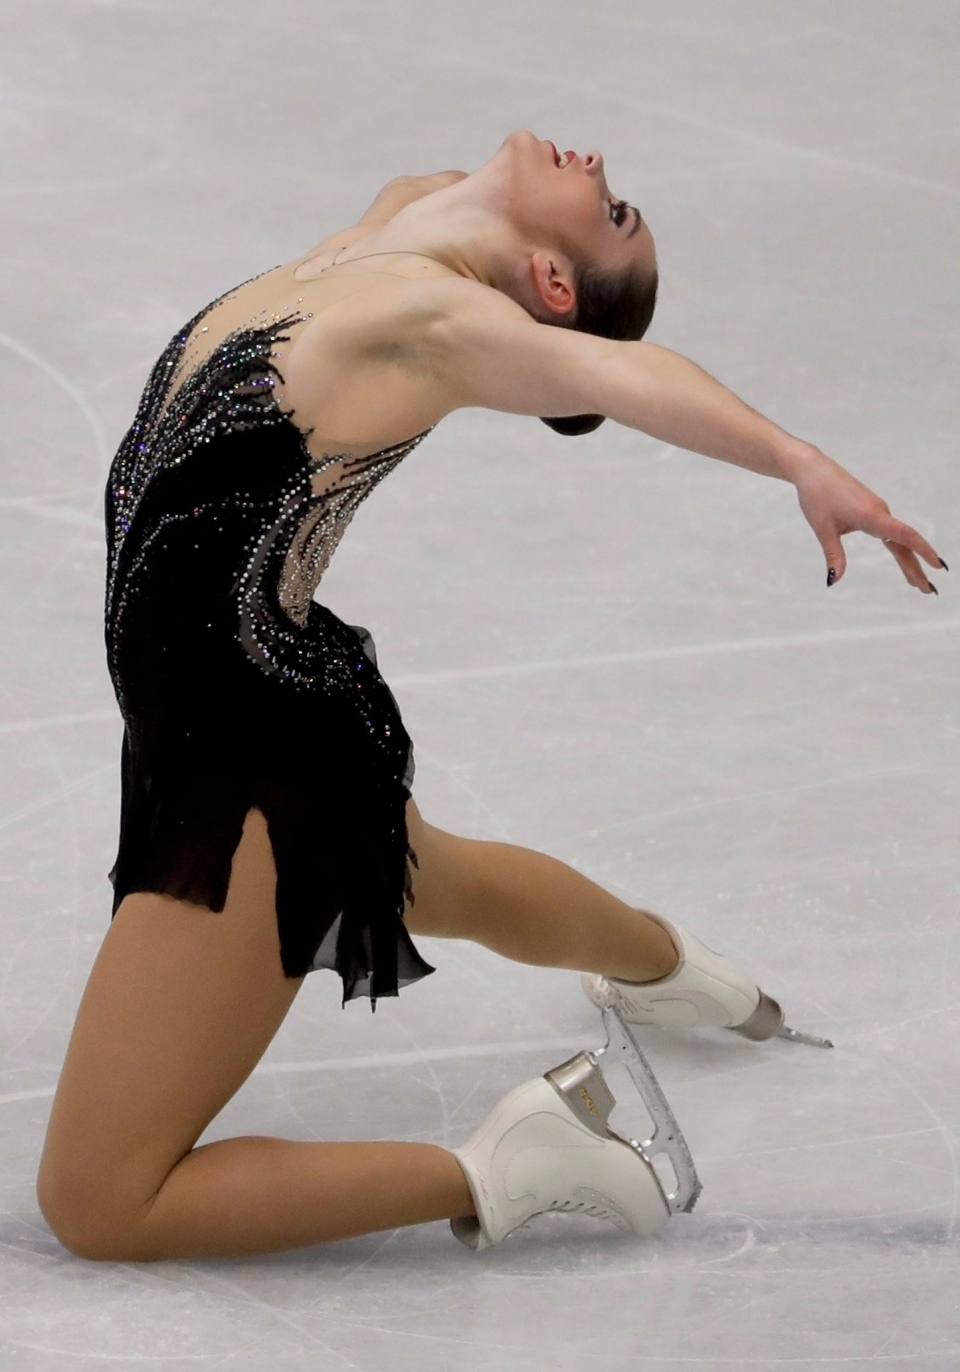 Kaetlyn Osmond of Canada performs during the women's free skating program, at the Figure Skating World Championships in Assago, near Milan, Italy, Friday, March 23, 2018. (AP Photo/Luca Bruno)